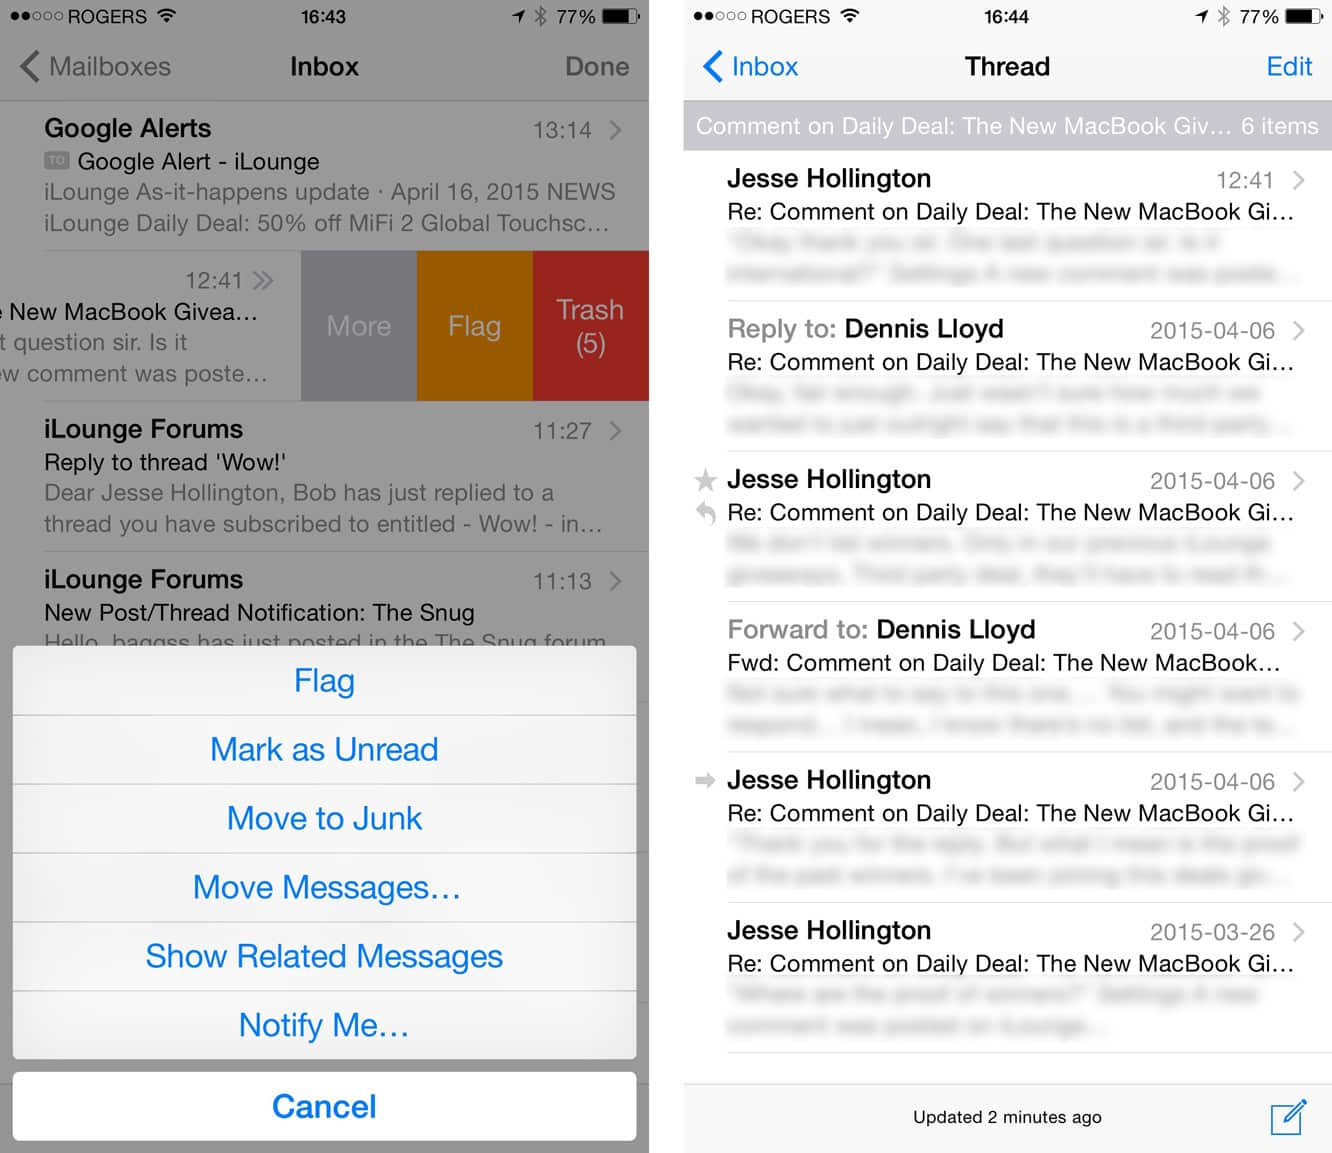 Showing full conversation threads in iOS Mail